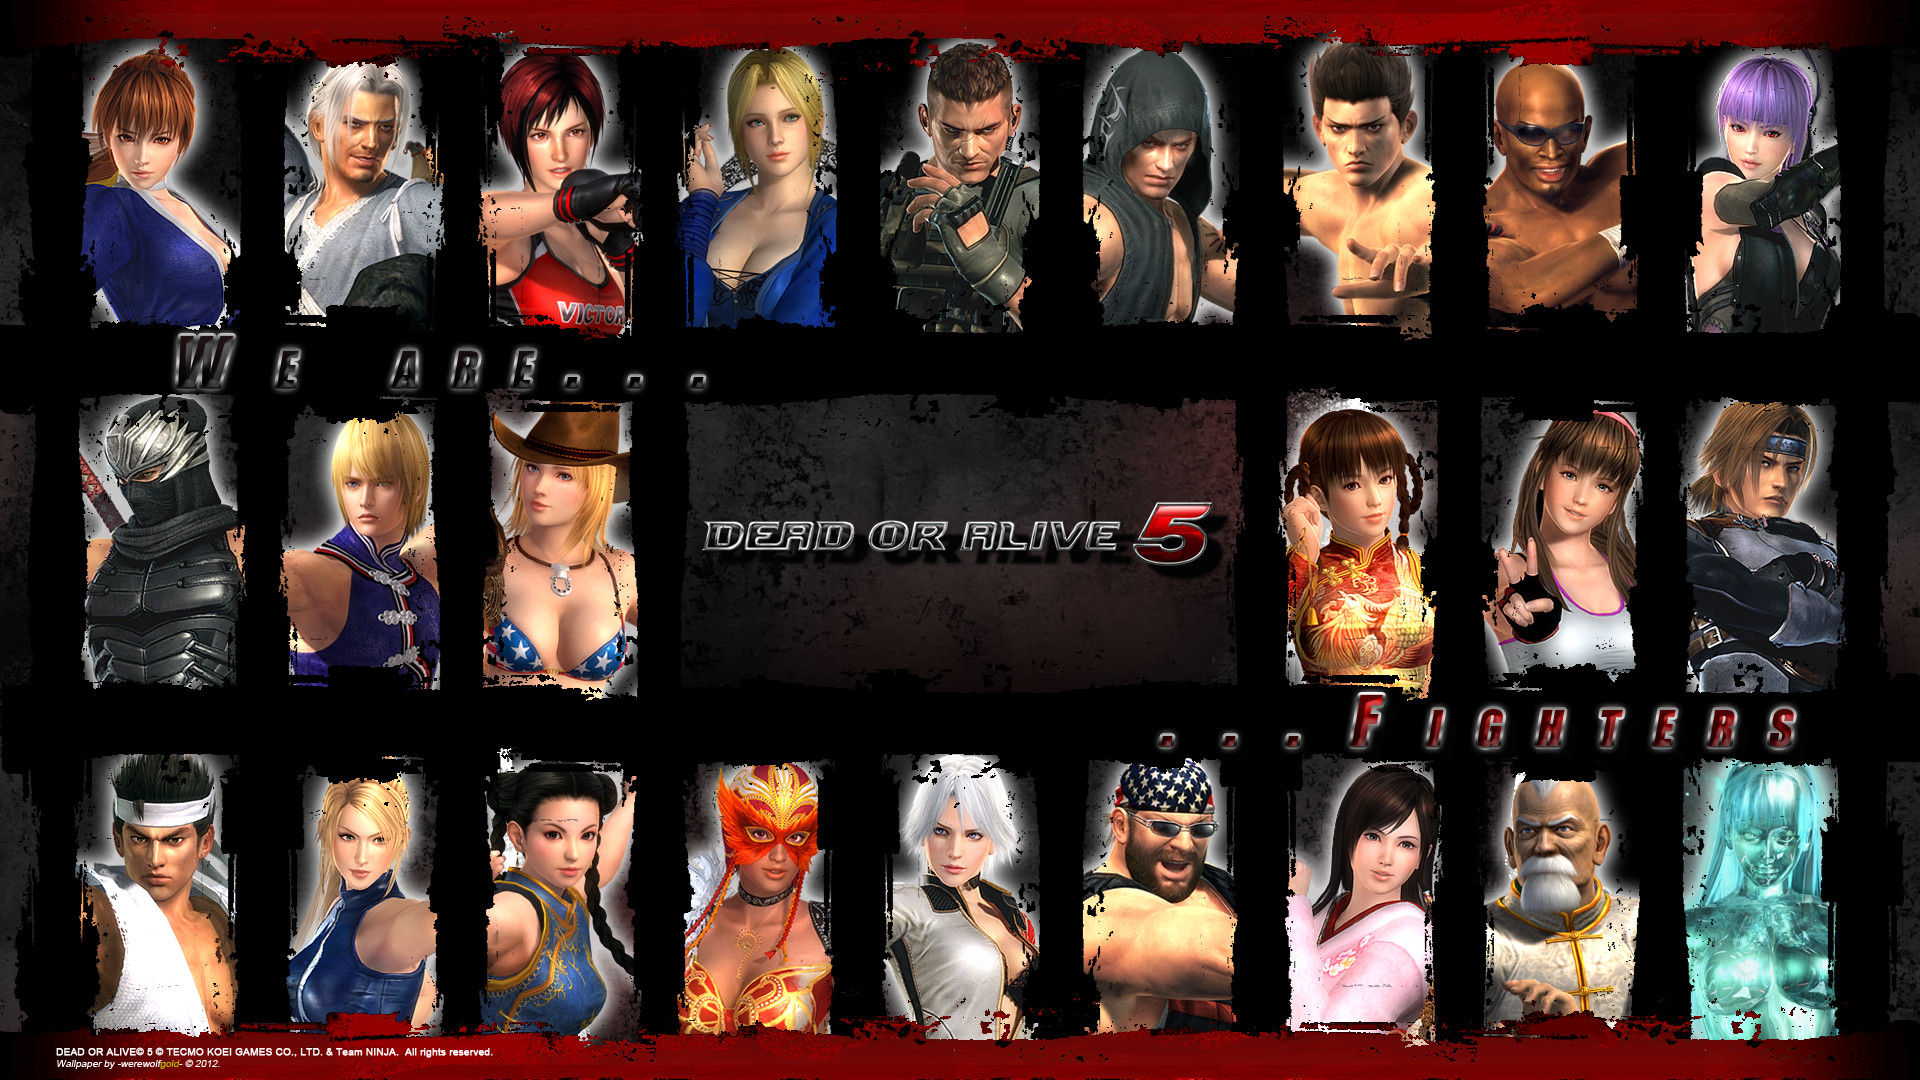 1920x1080 Image - Doa5 character compilation wallpaper by werewolfgold-d5kr7y5.jpg |  Dead or Alive Wiki | FANDOM powered by Wikia